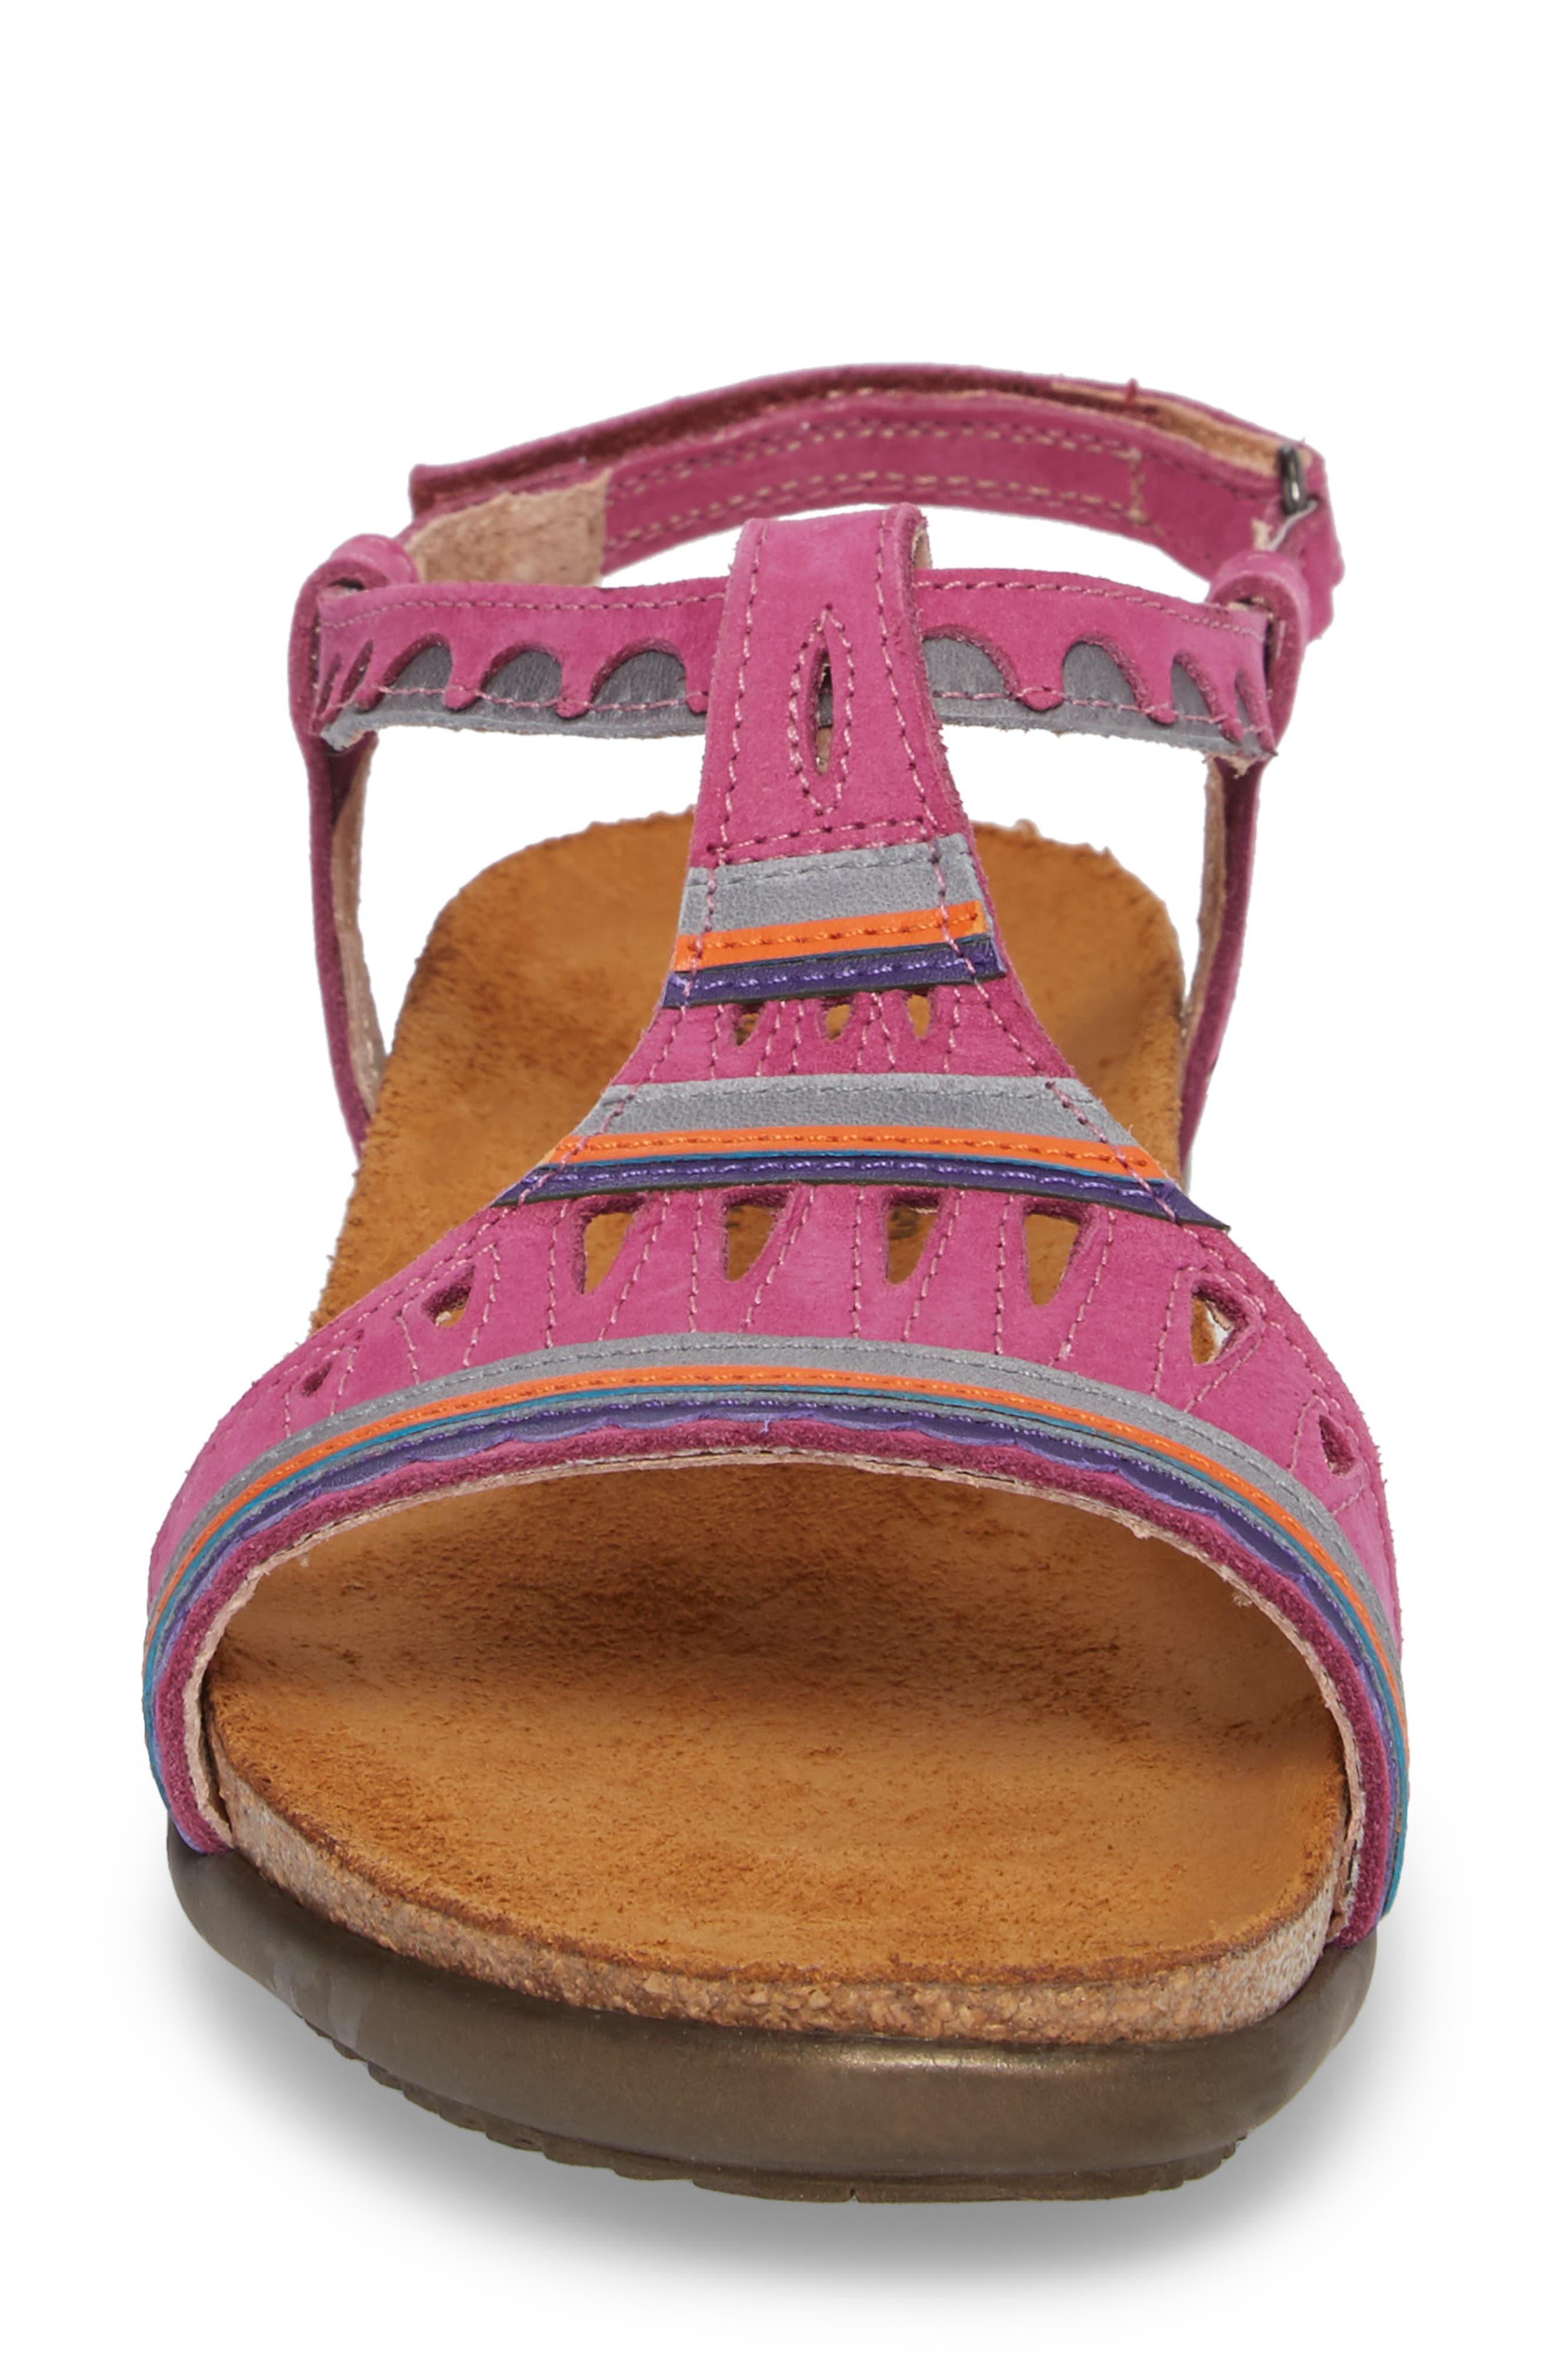 Odelia Perforated T-Strap Sandal,                             Alternate thumbnail 4, color,                             Pink Plum Nubuck